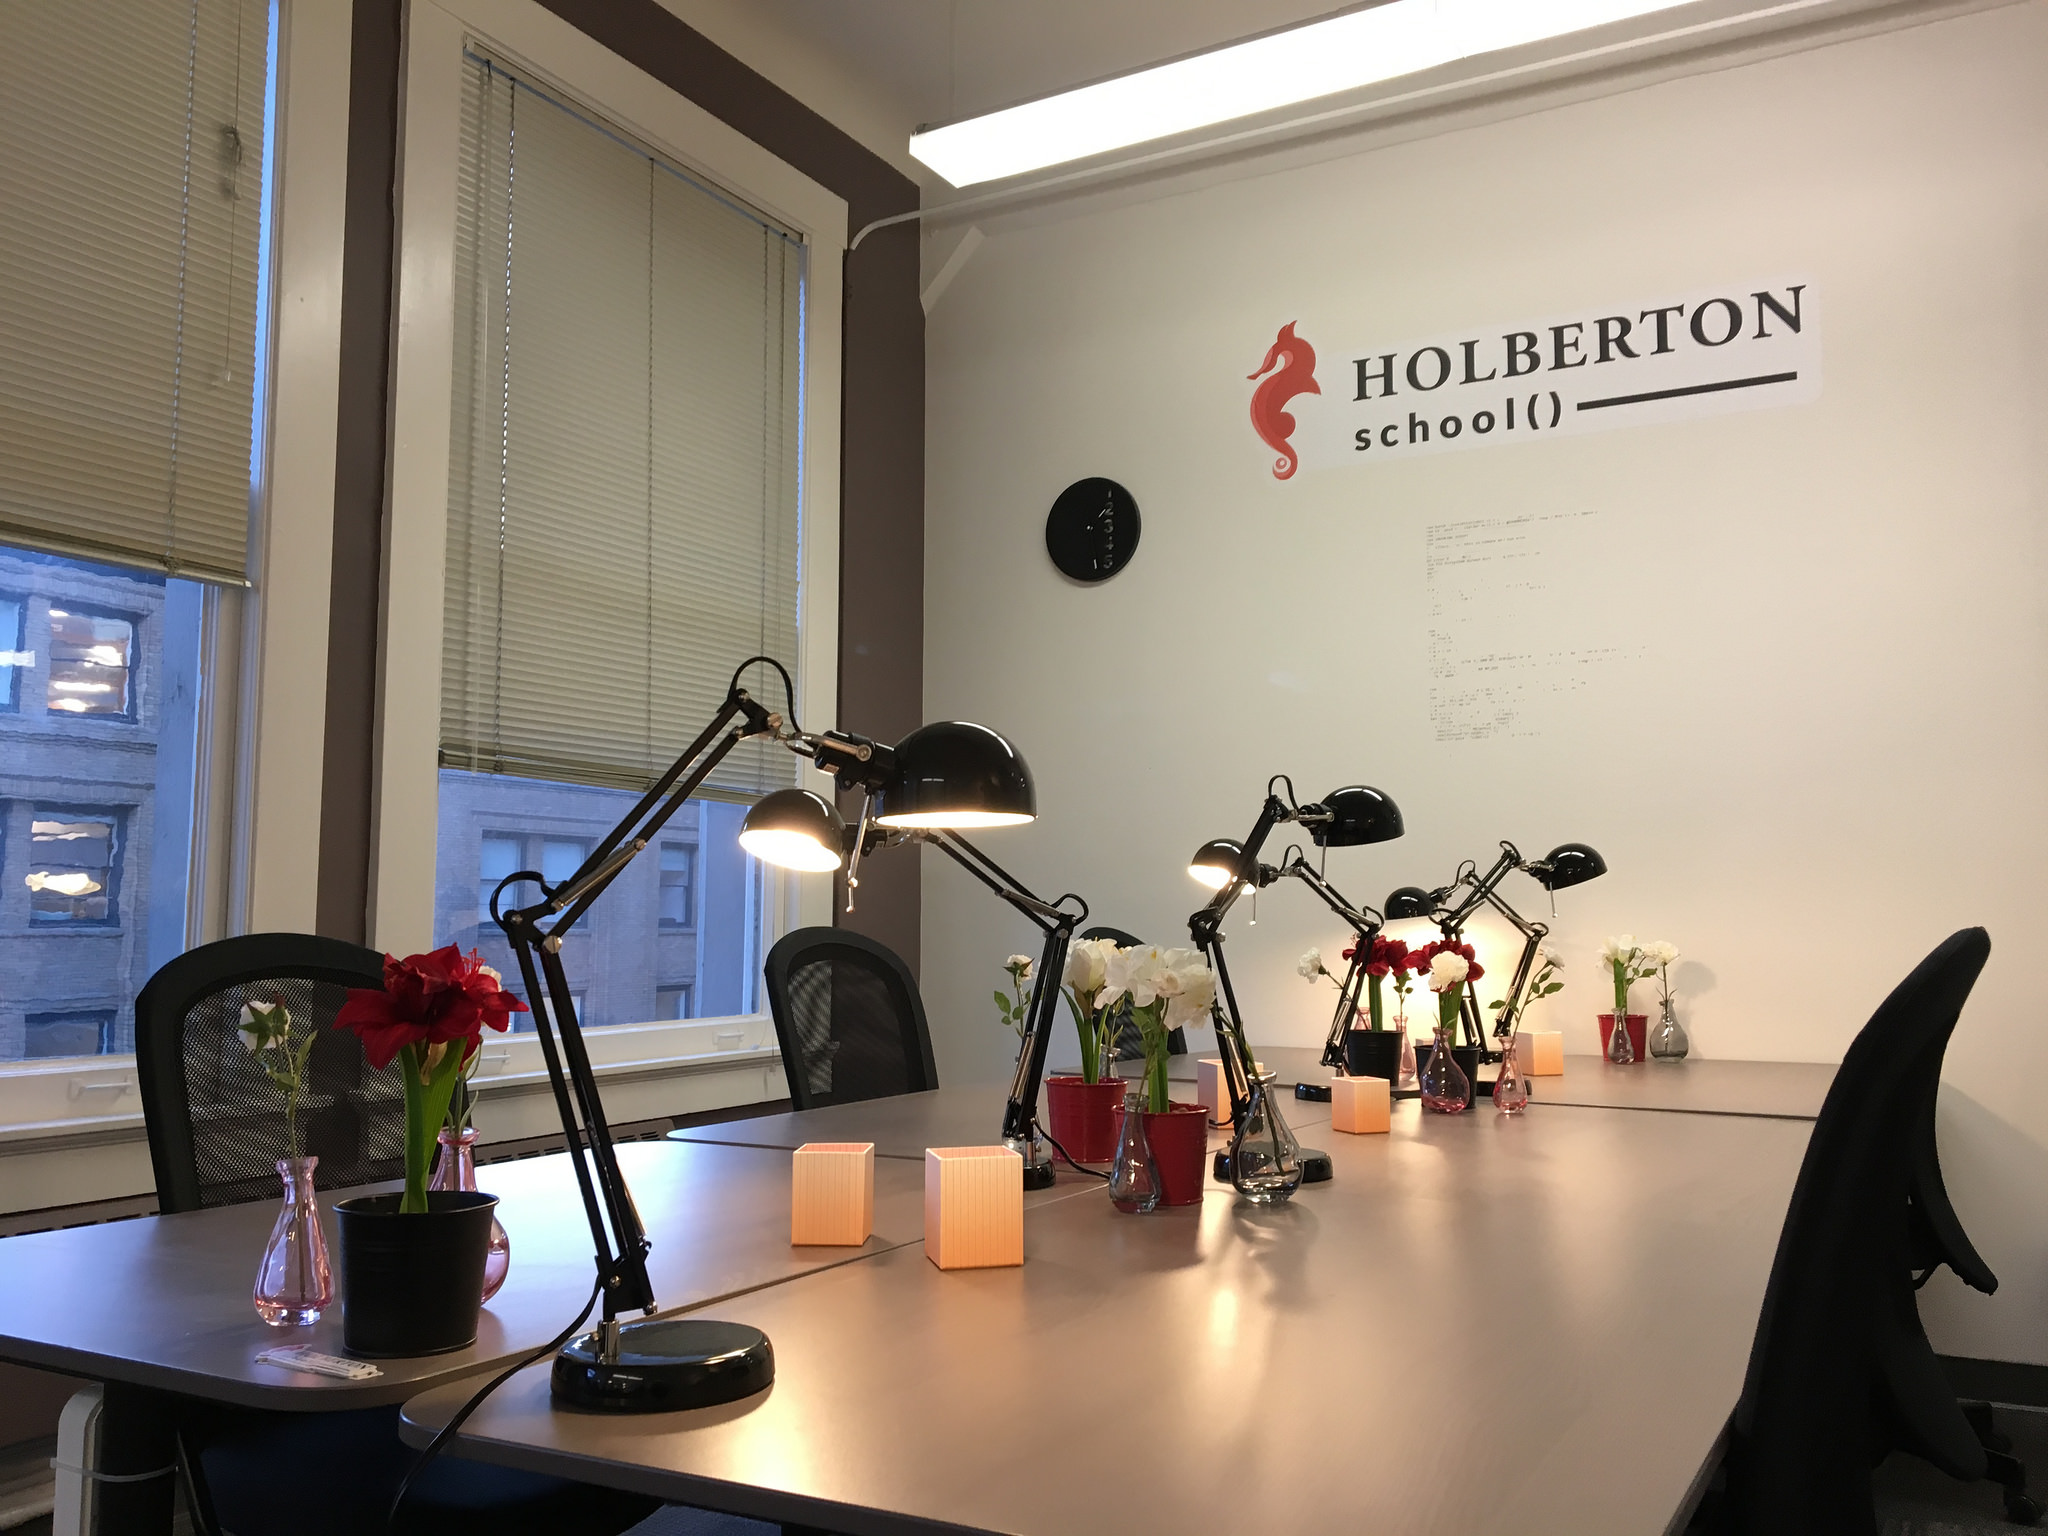 Holberton School and Gandi will have the opportunity to work side-by-side on training the next generation of Highly skilled Software Engineers.